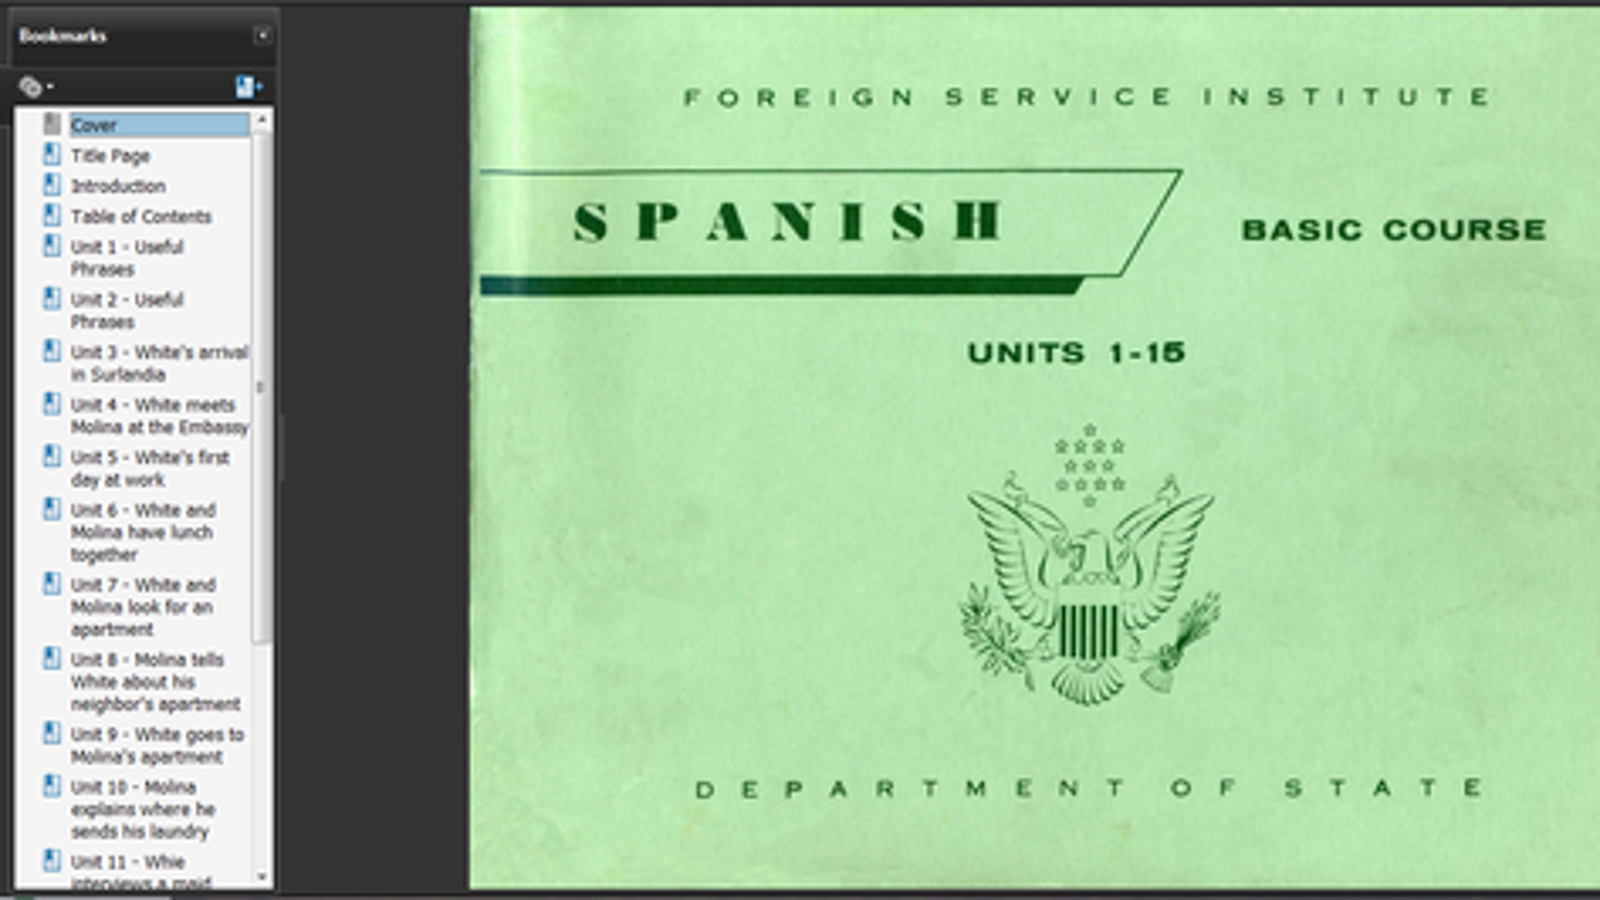 Foreign Service Institute's Extensive Language Courses Are